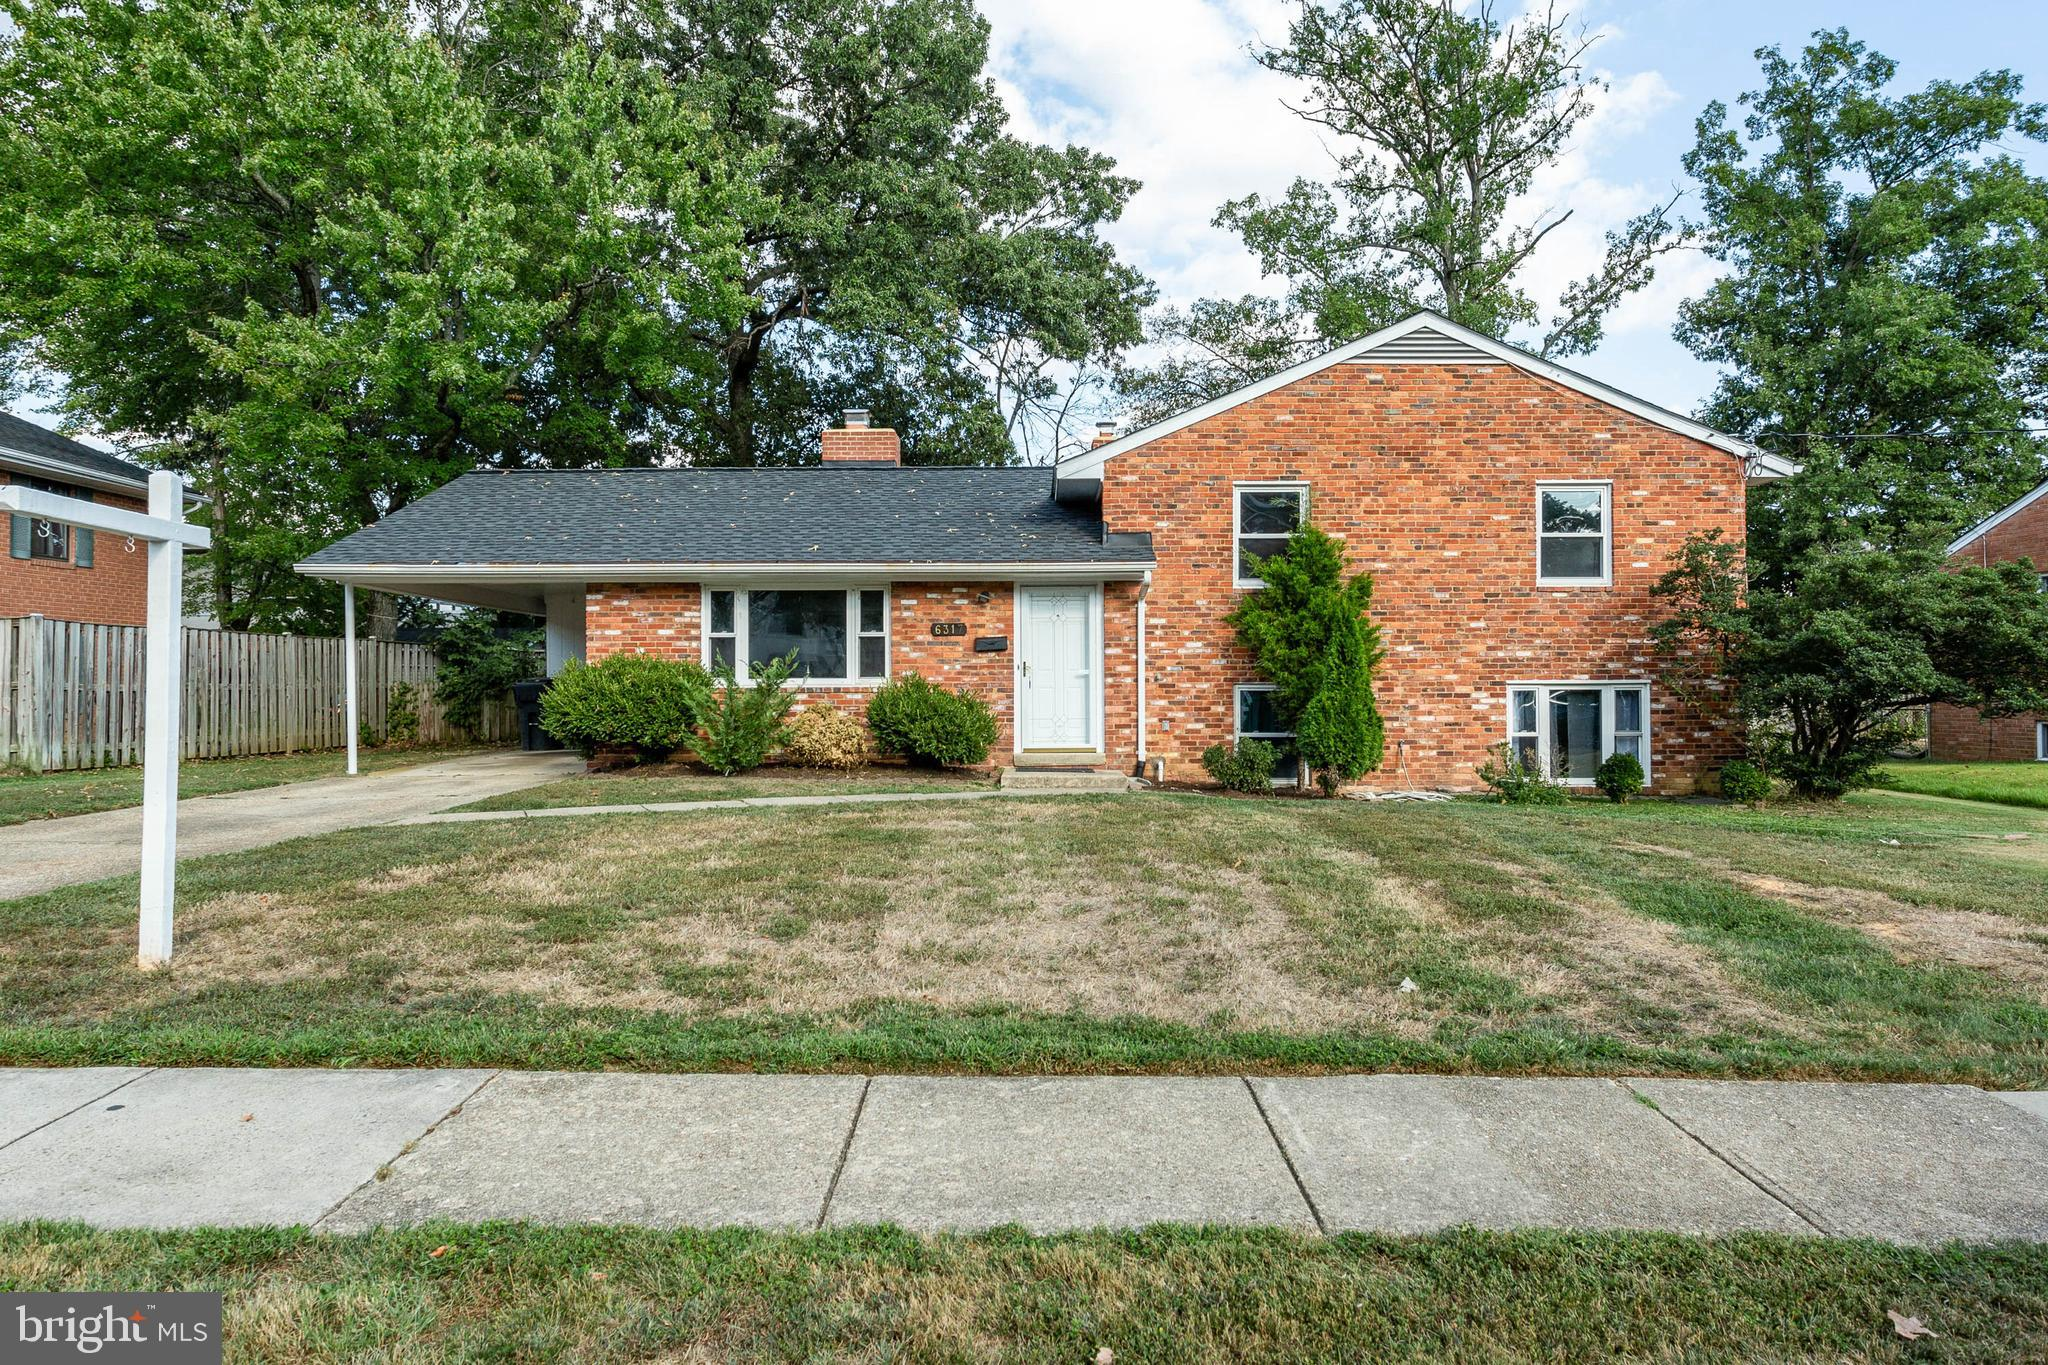 ***Open House Must see this Sunday (9/22) 1 to 4 Great Single Family Home in Springfield in an awesome location, close to I95, shops and restaurants. This lovely split level home has 4 bedrooms and three bathrooms. The home also features, hard wood floors in the the three upper bedrooms, and master bedroom has own updated bathroom. New roof in 2018, new chimney, new Goodman 4 ton furnace, updated electric panel, new sewer line with lifetime warranty, freshly painted with new carpets, new flooring and ready for new owner to put in their finishing touches. There are plenty of storage which can be found in the carport, carport shed, and backyard shed. The home has a main entrance, kitchen side entrance, back yard sliding glass door entrance and a walkout basement side entrance/exit.  With a beautiful flat fenced in back yard, location and community makes this home a great value.